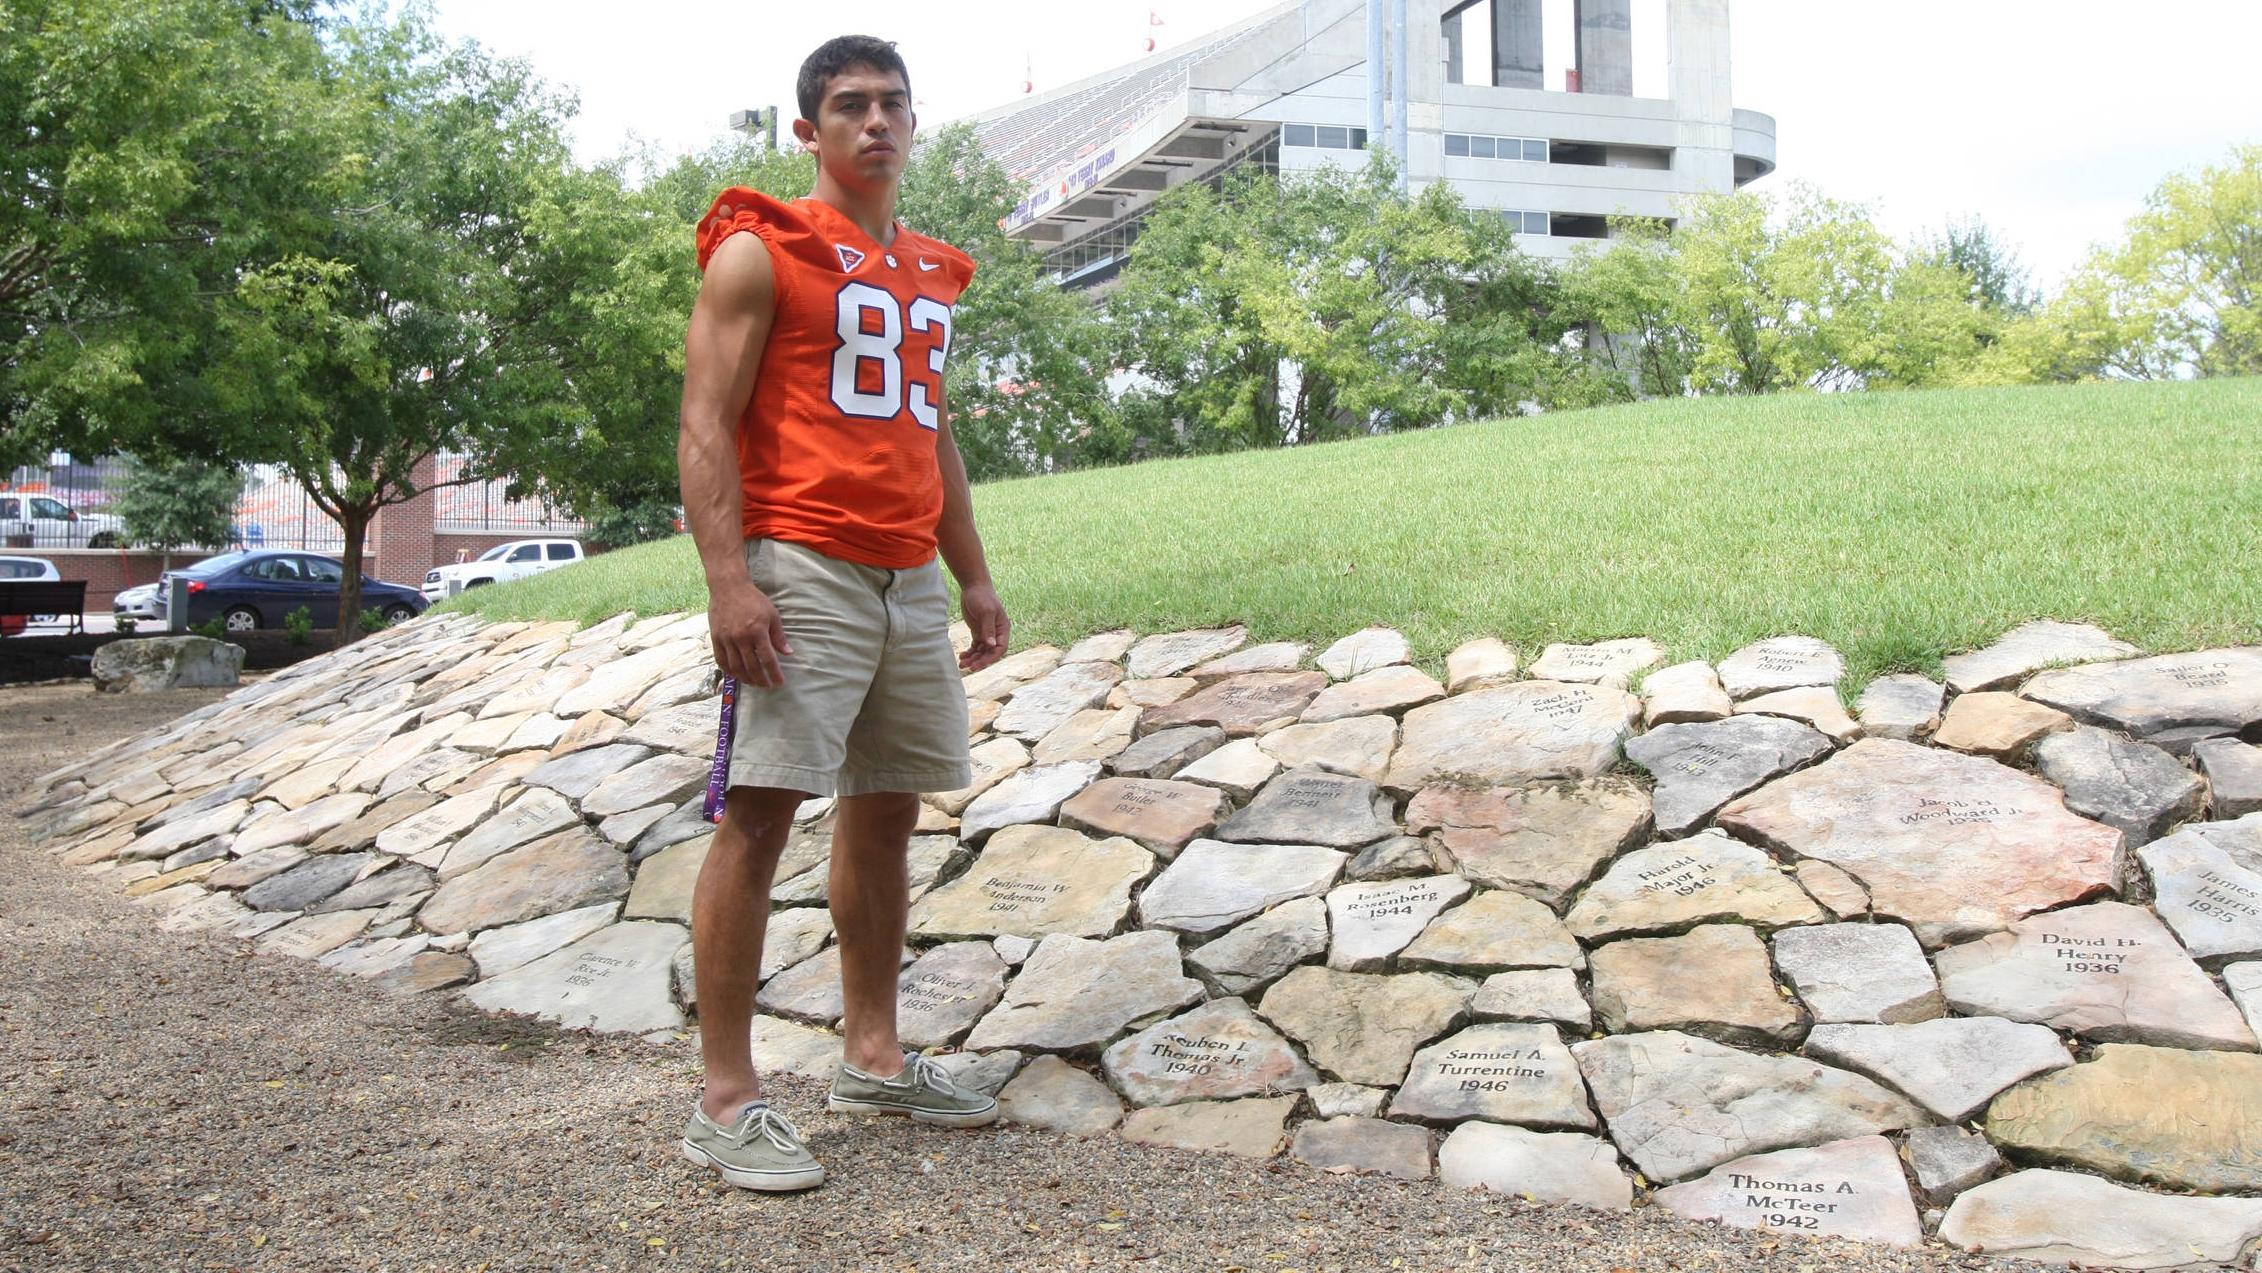 Football Game Program Feature: Keeping His Promise